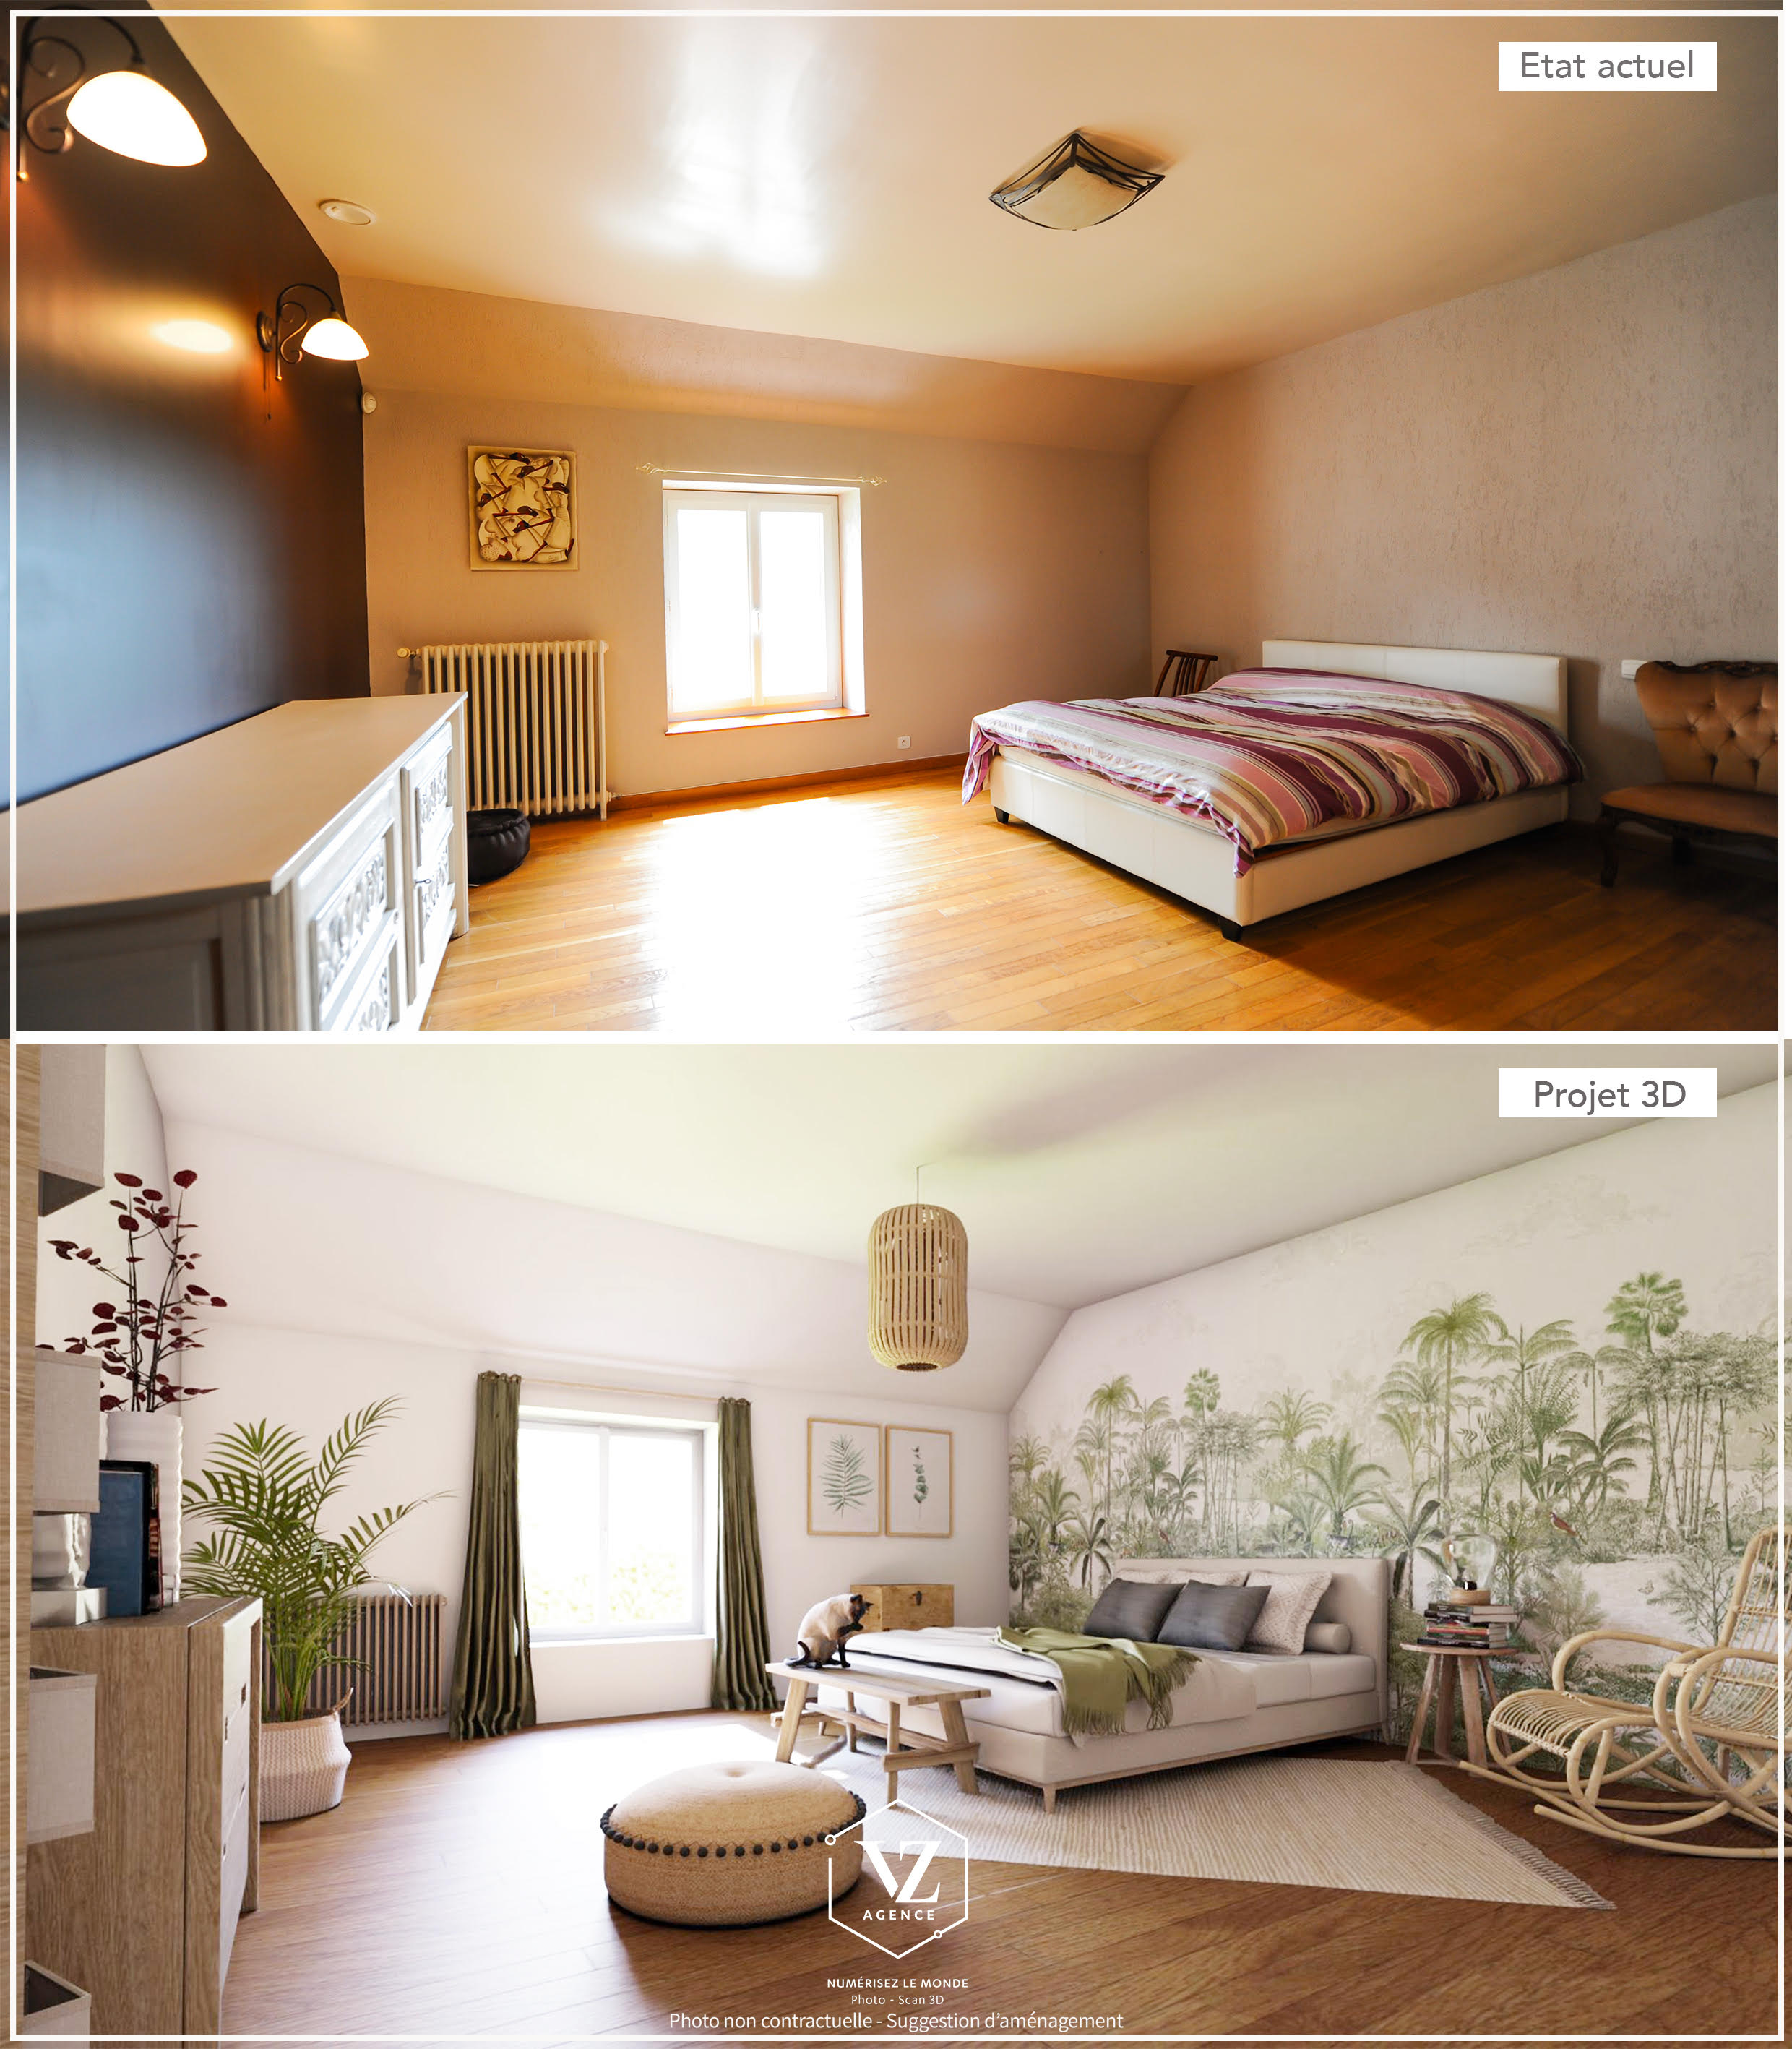 Amenagement 3D sur photo home staging virtuel